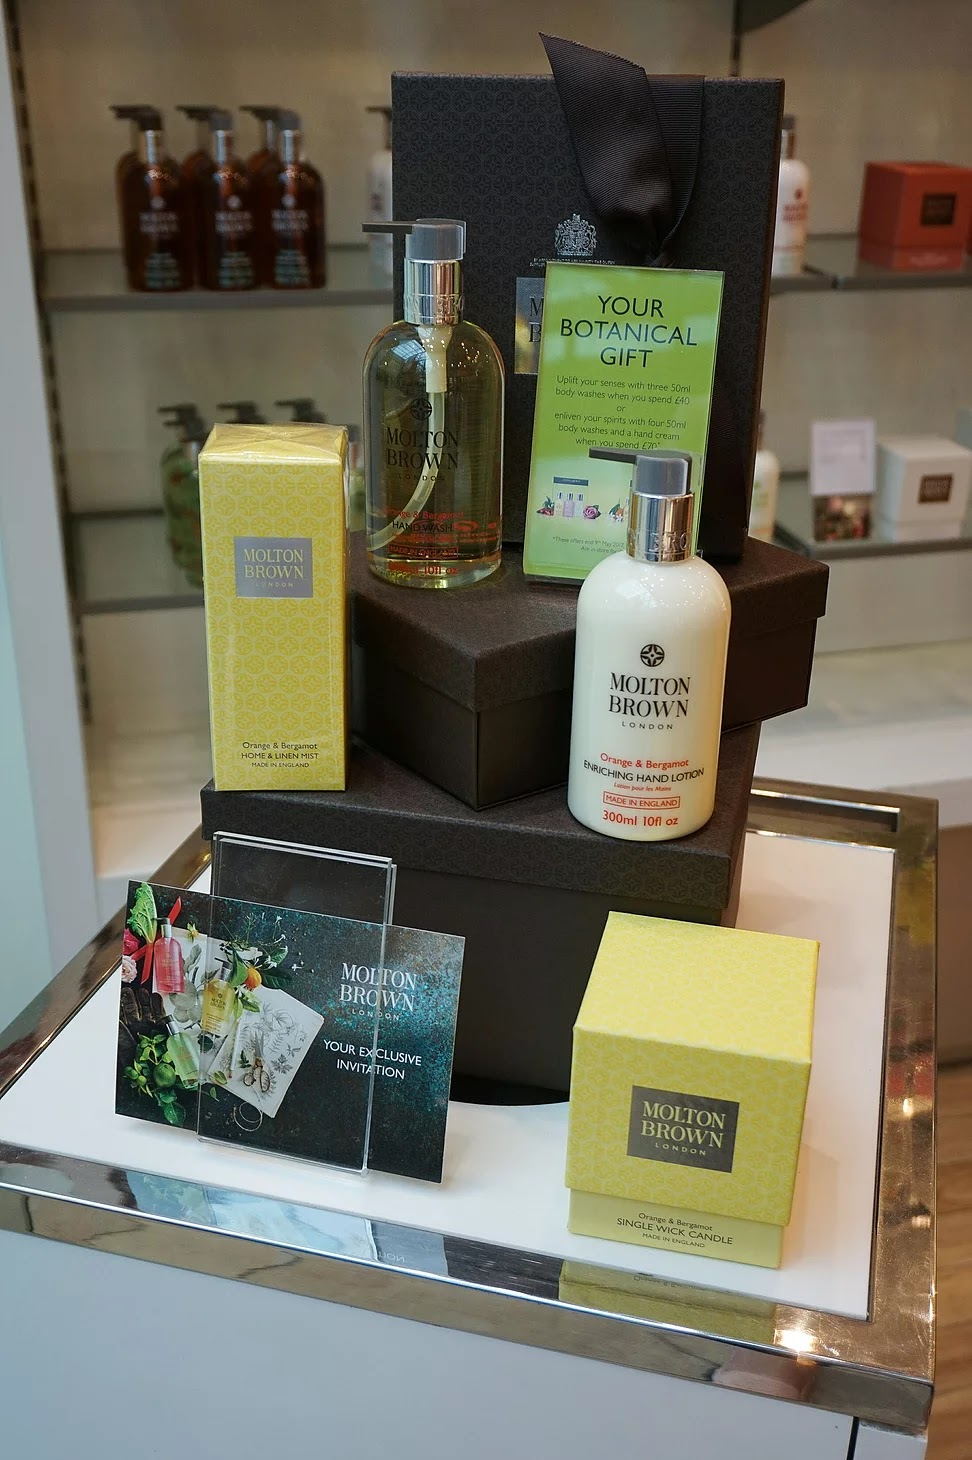 Molton Brown botany in bloom store setup